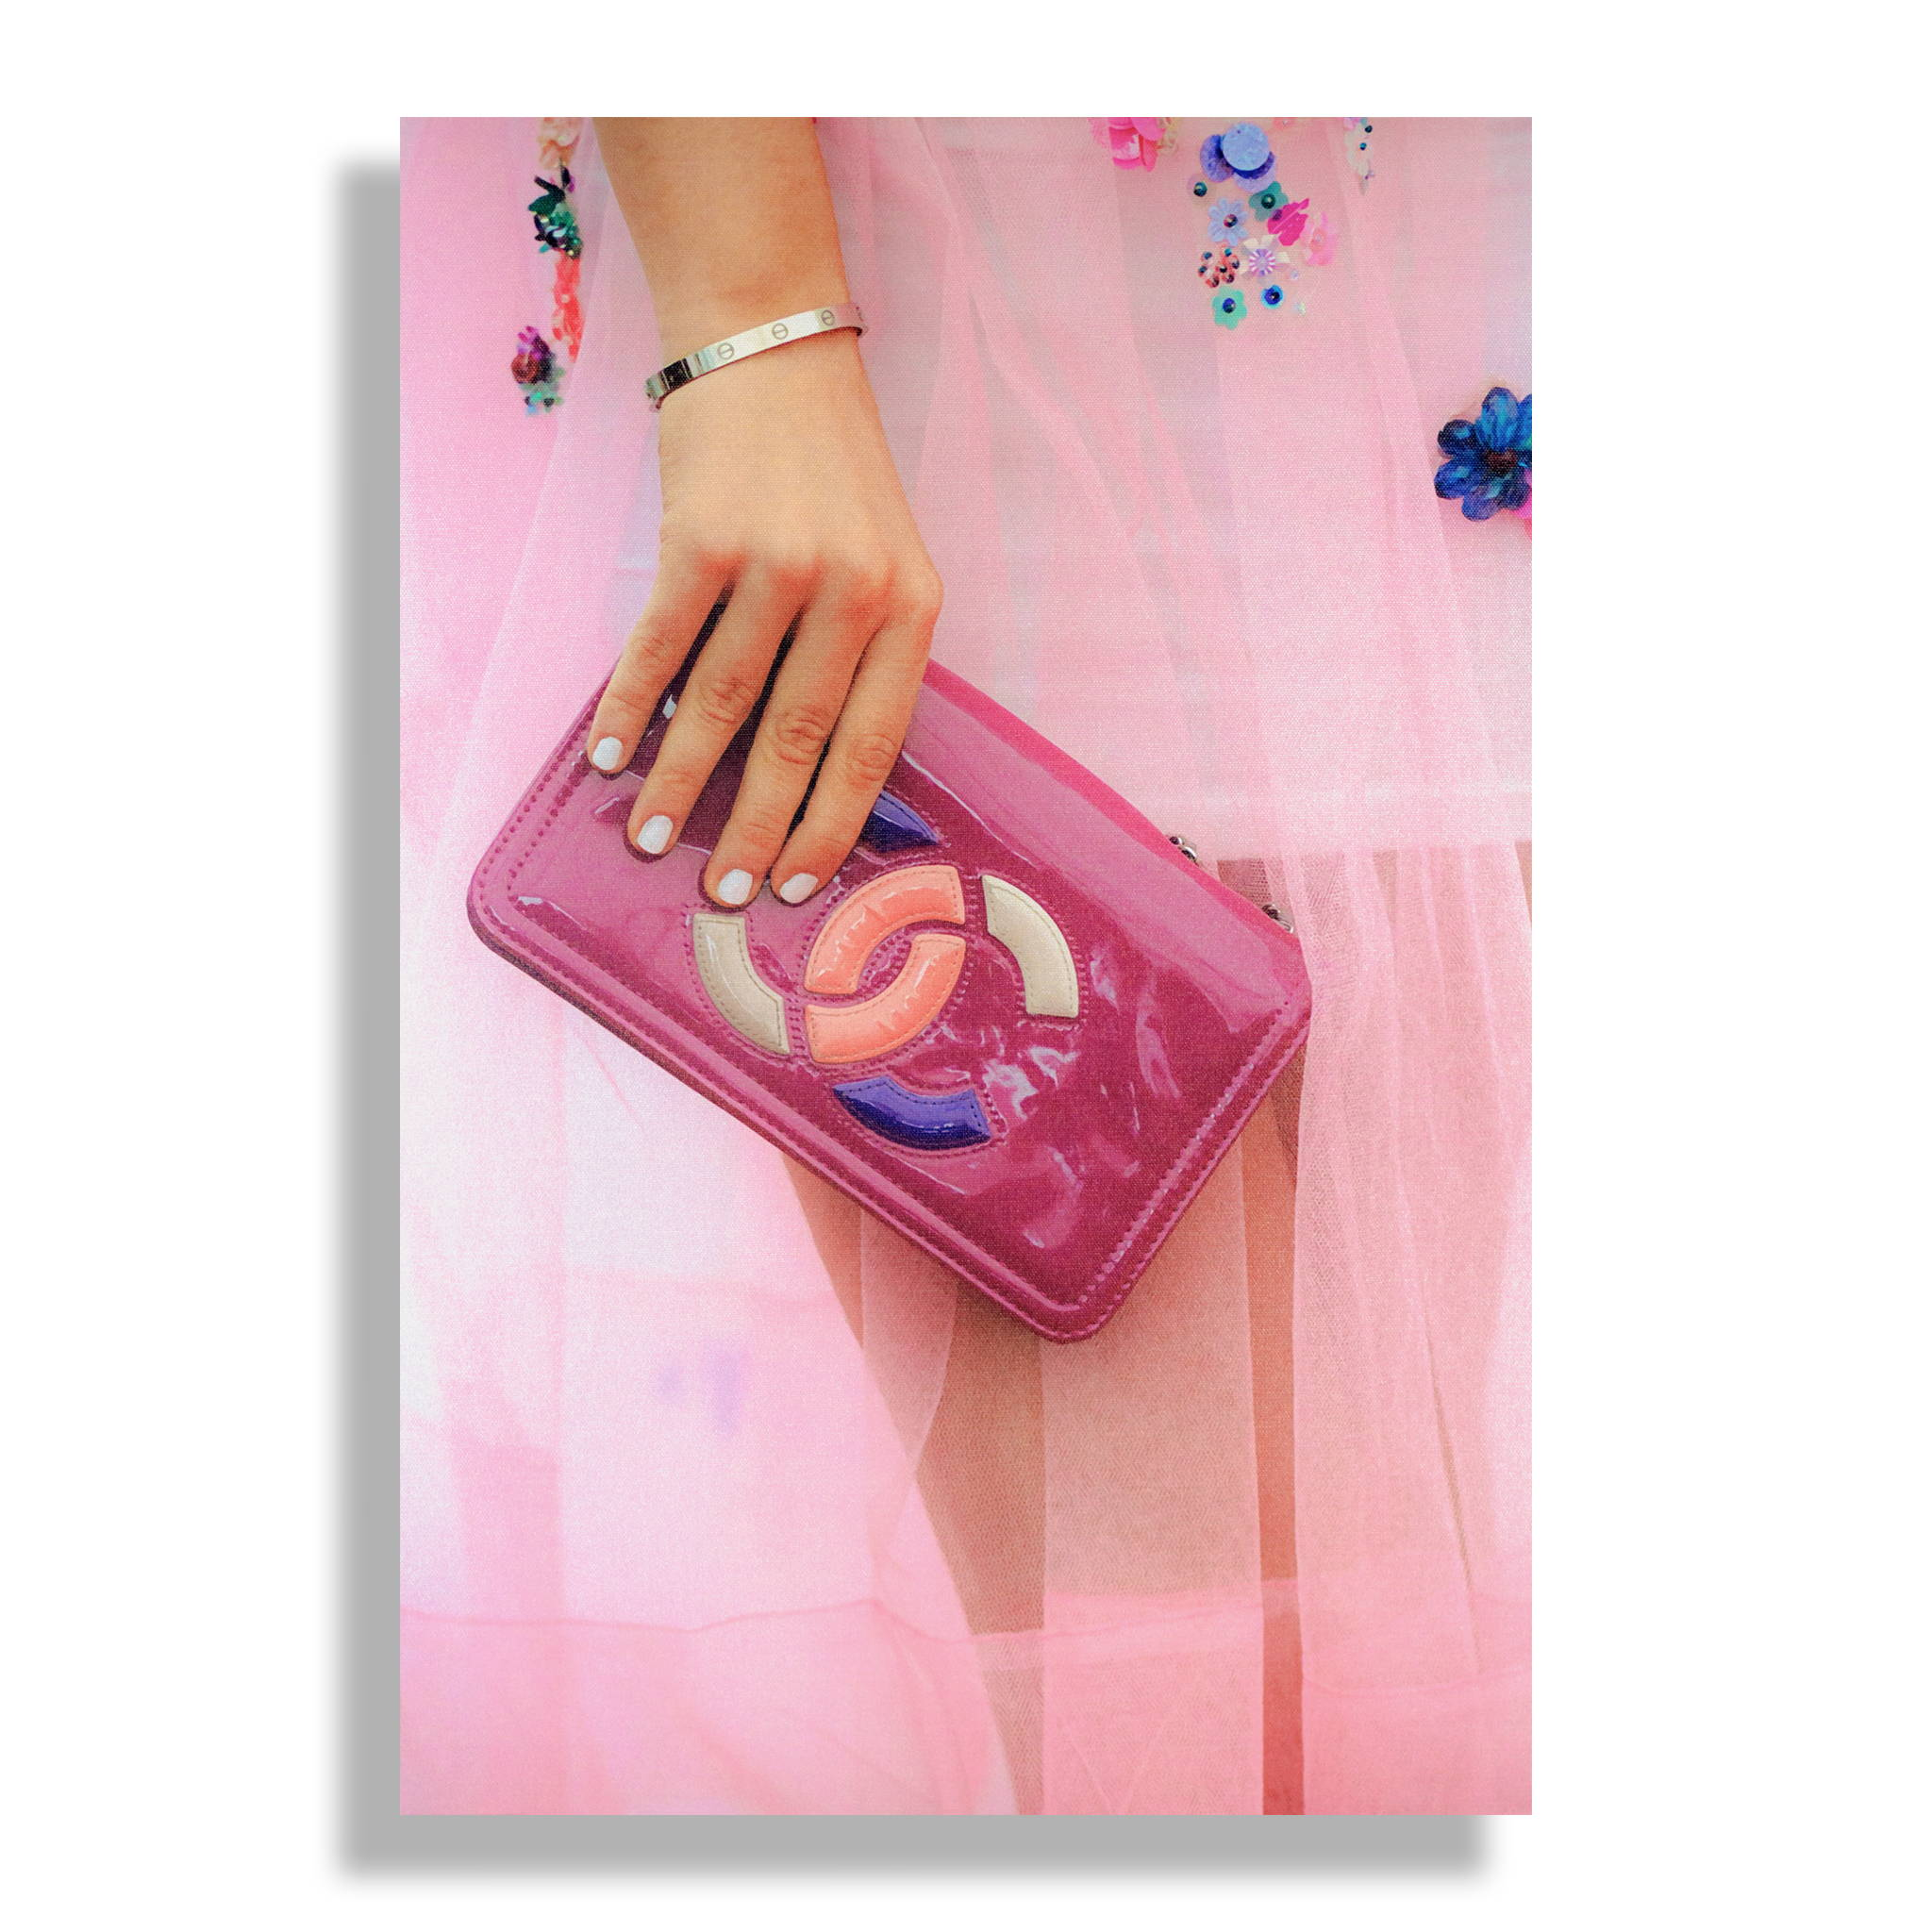 Fashion Wall Art Print - Pretty in Pink - Recoveted